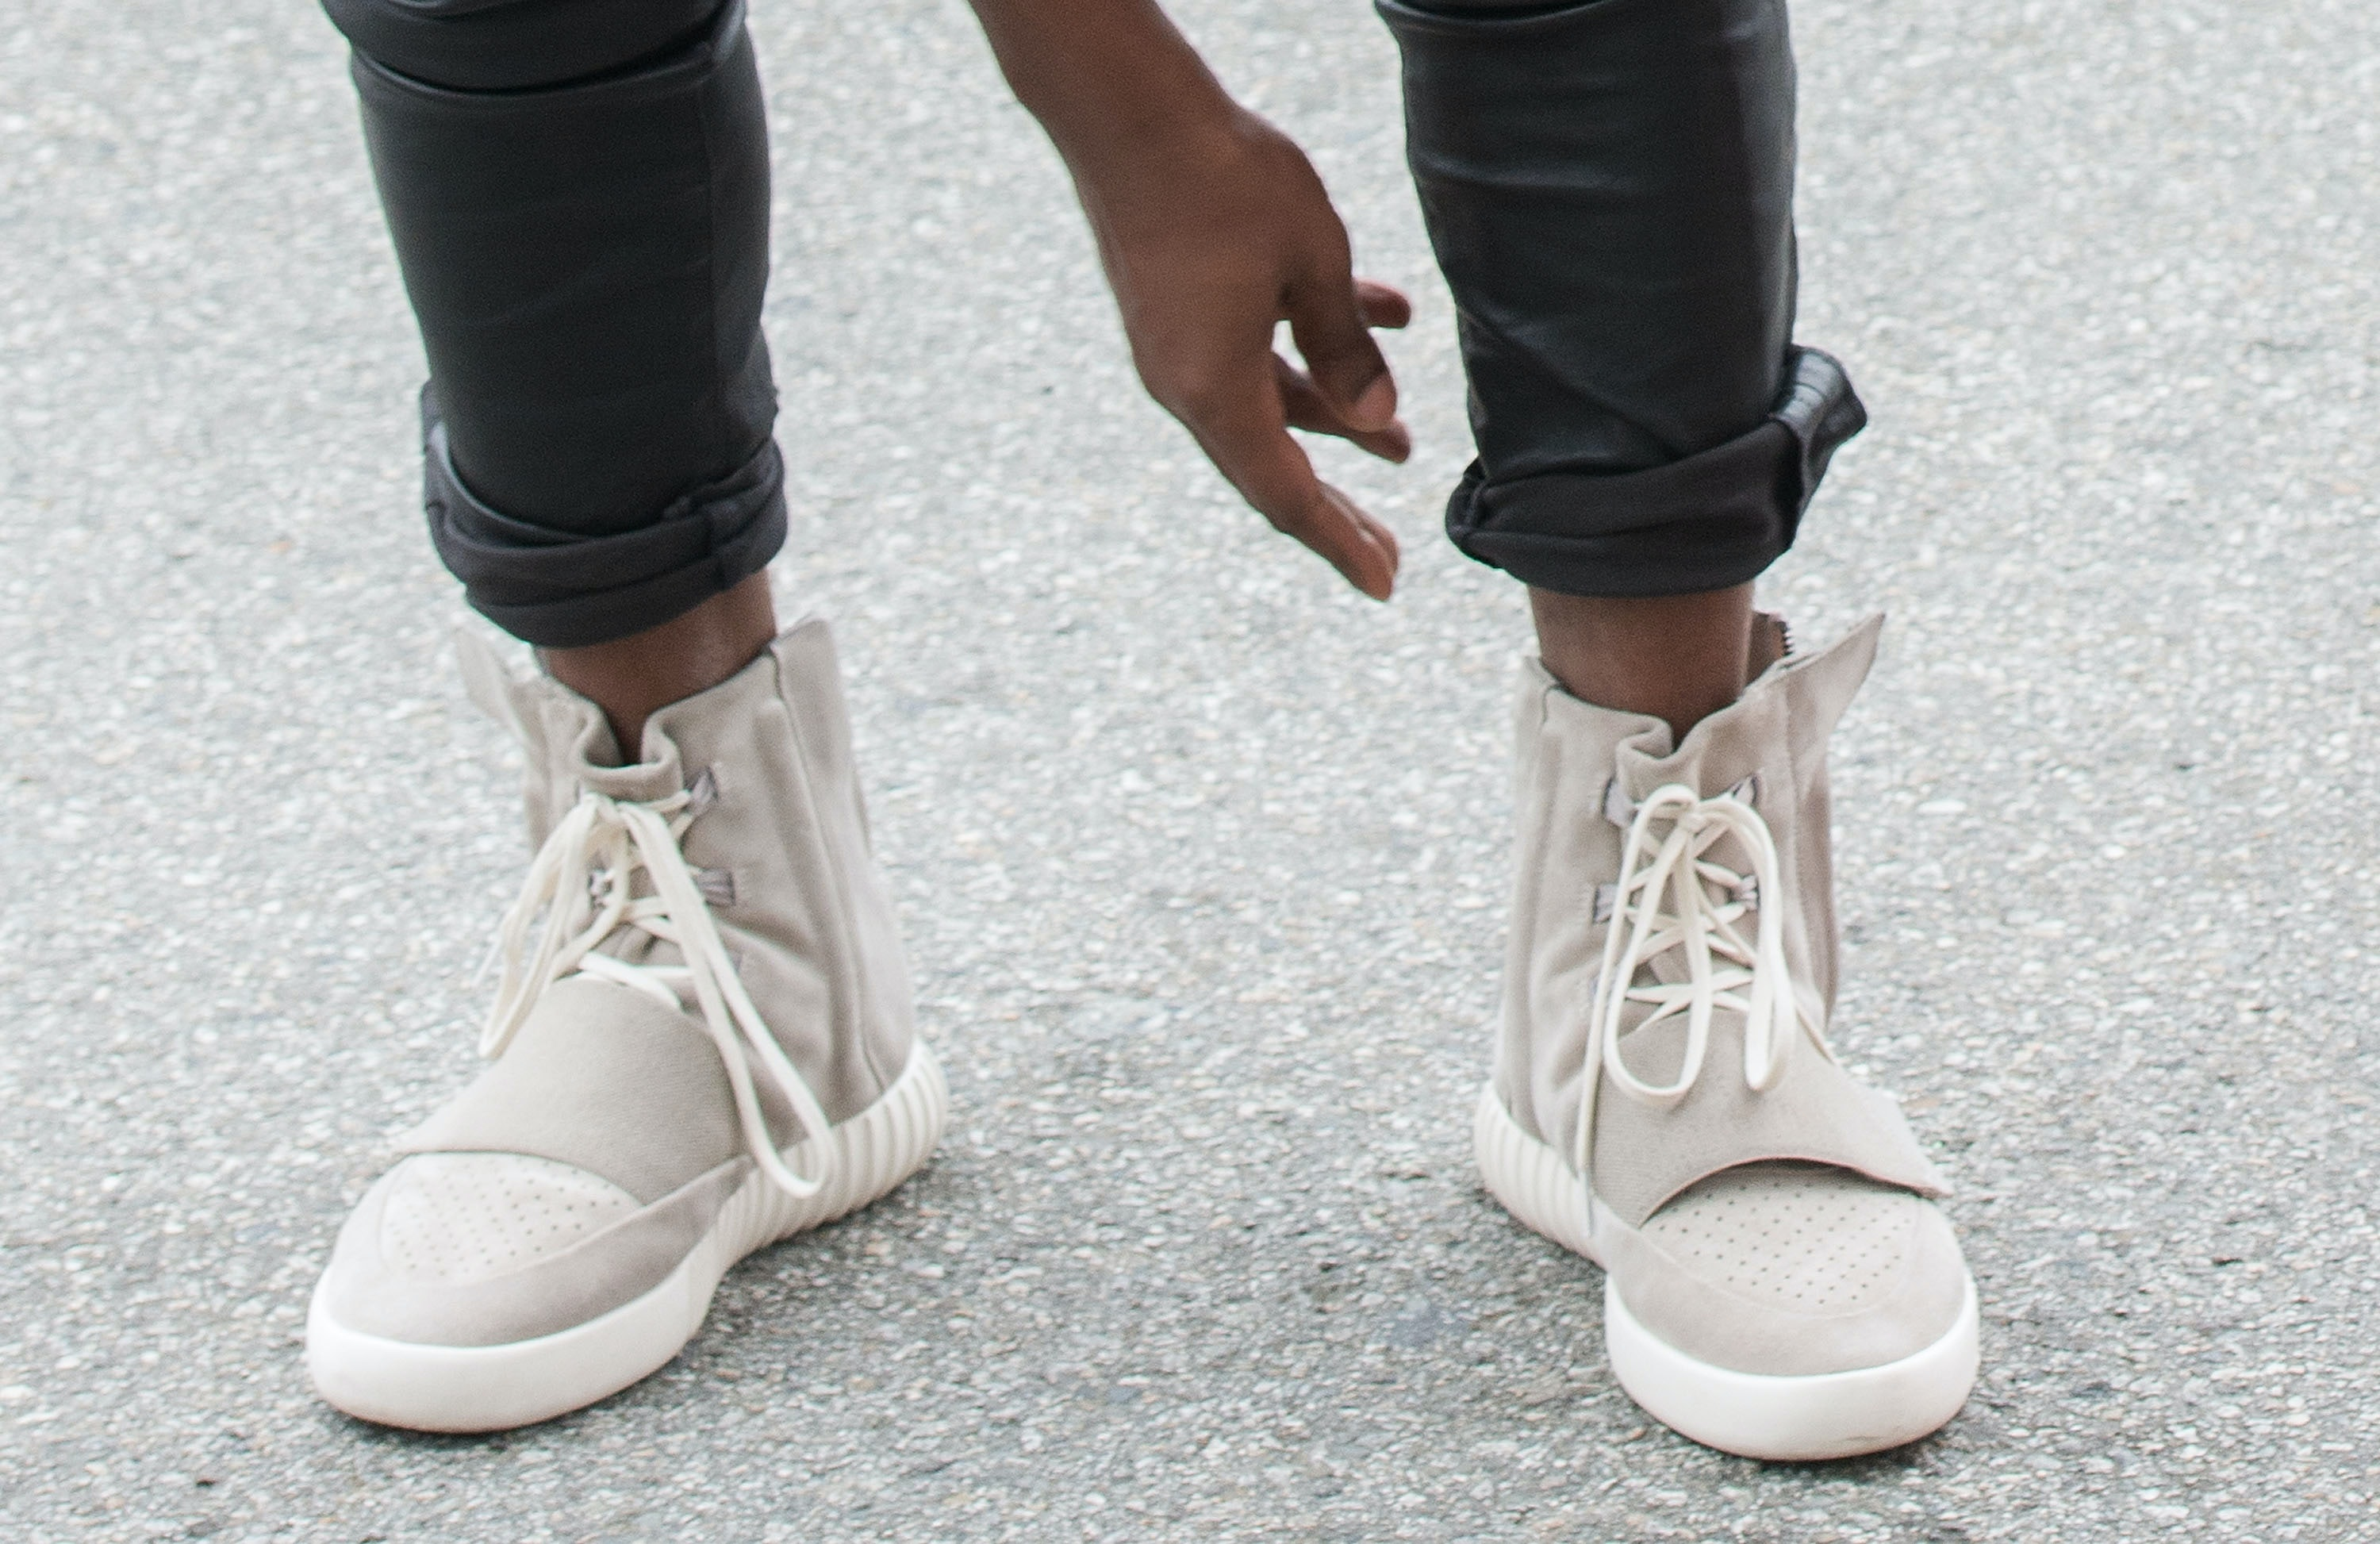 When Is The New Yeezy Boost 750 Coming Out? Mark Your Calendars Now, Folks